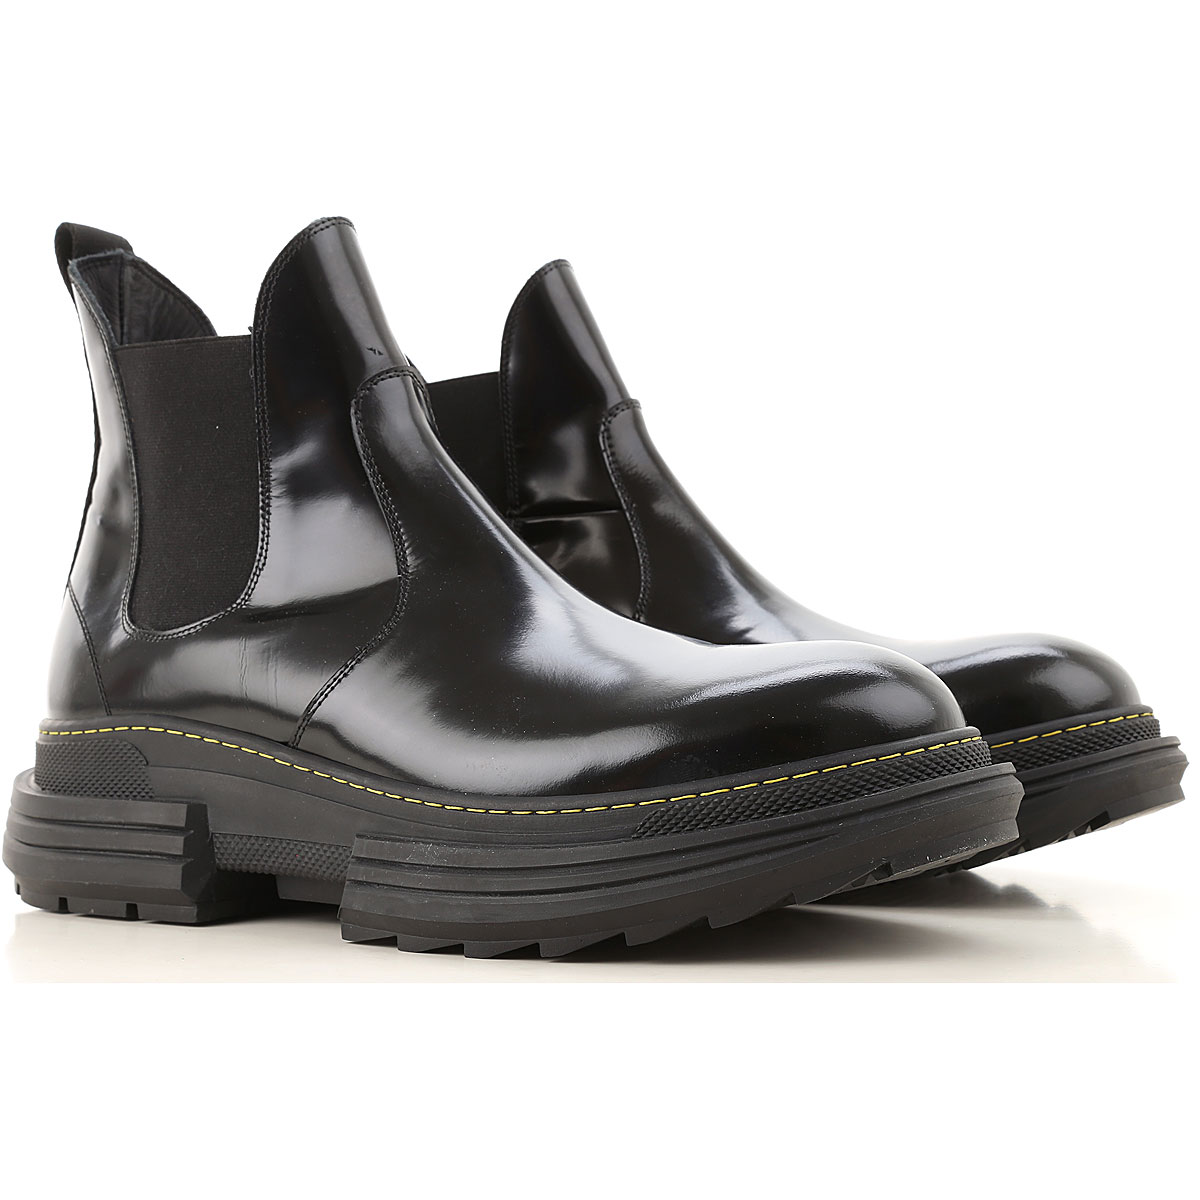 Beyond Chelsea Boots for Men, Black, Leather, 2019, 11.5 8 9